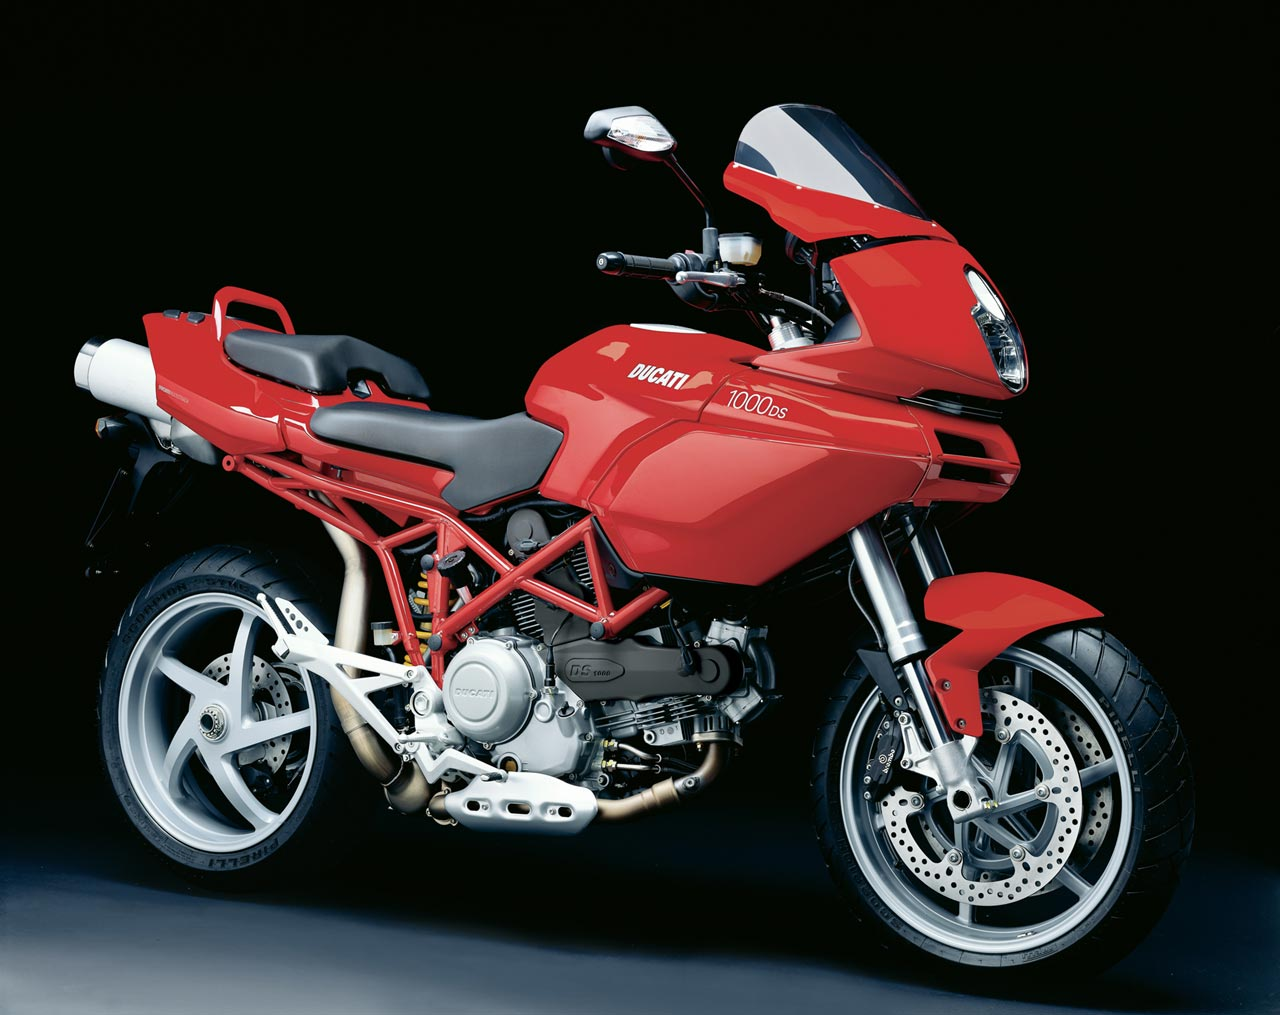 2006 ducati multistrada 1000ds. Black Bedroom Furniture Sets. Home Design Ideas